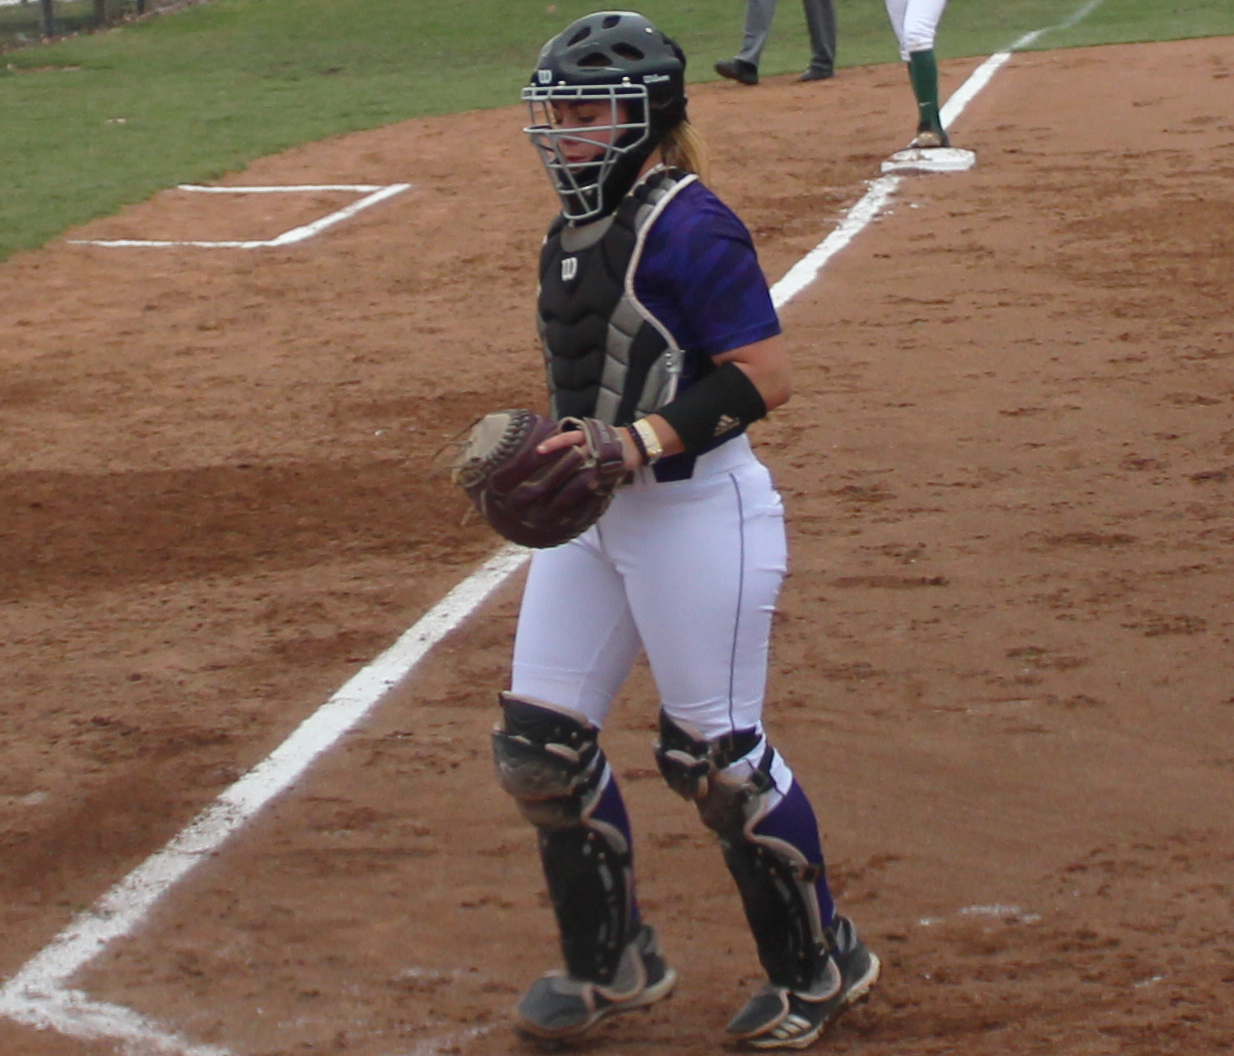 Meghan Henson jogs back to behind home plate.